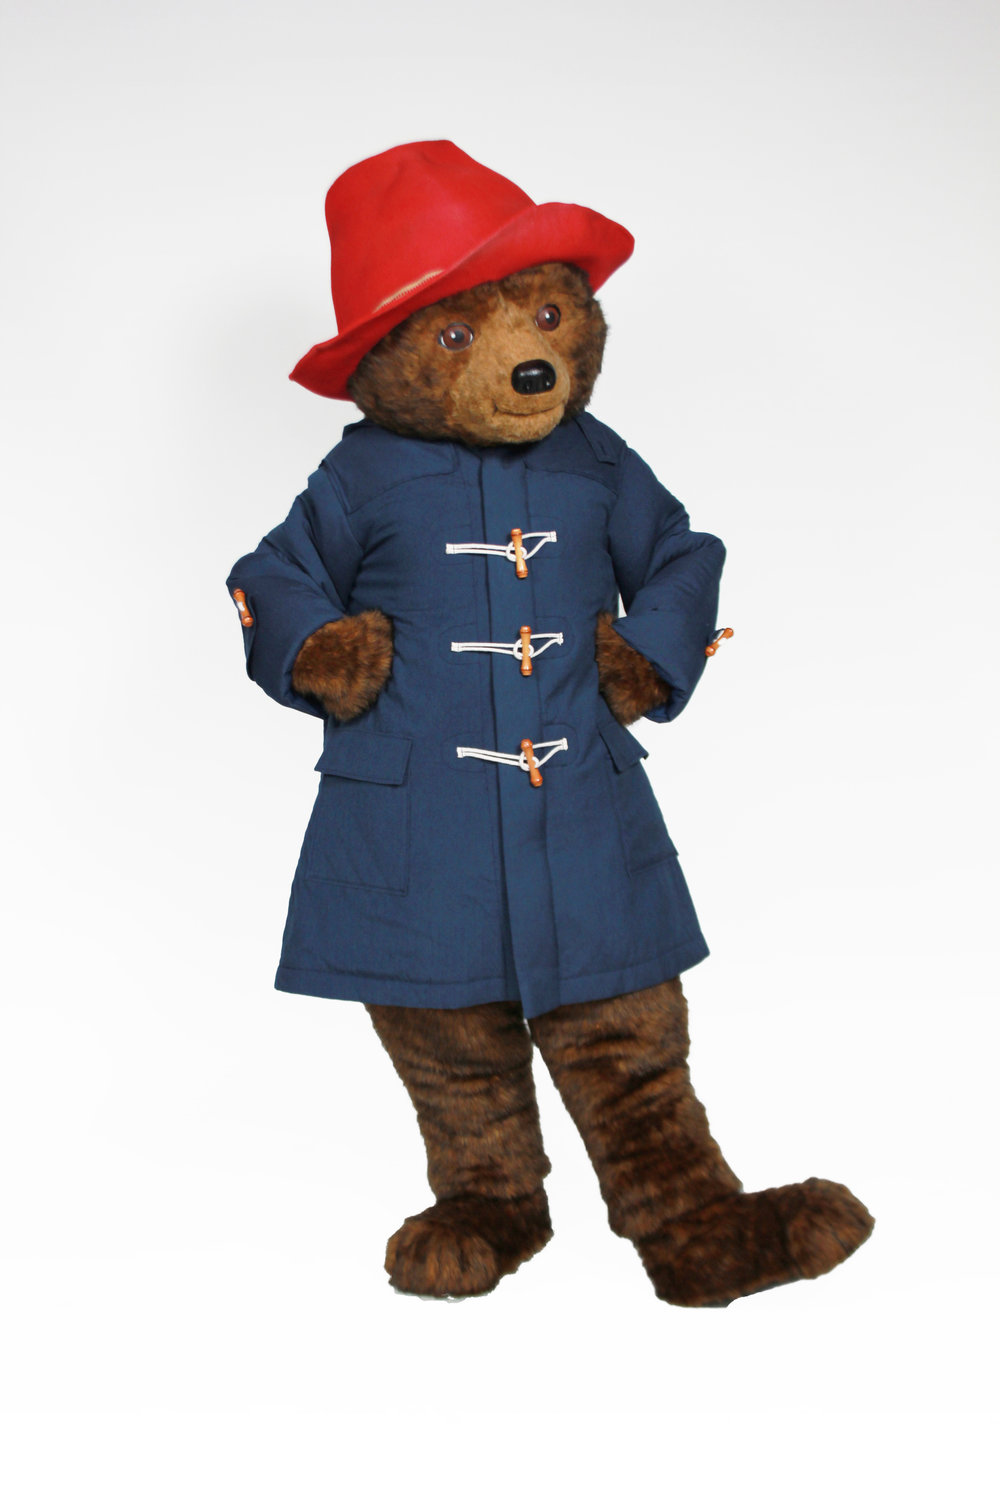 Paddington-Bear-Custom-Mascot1.jpg